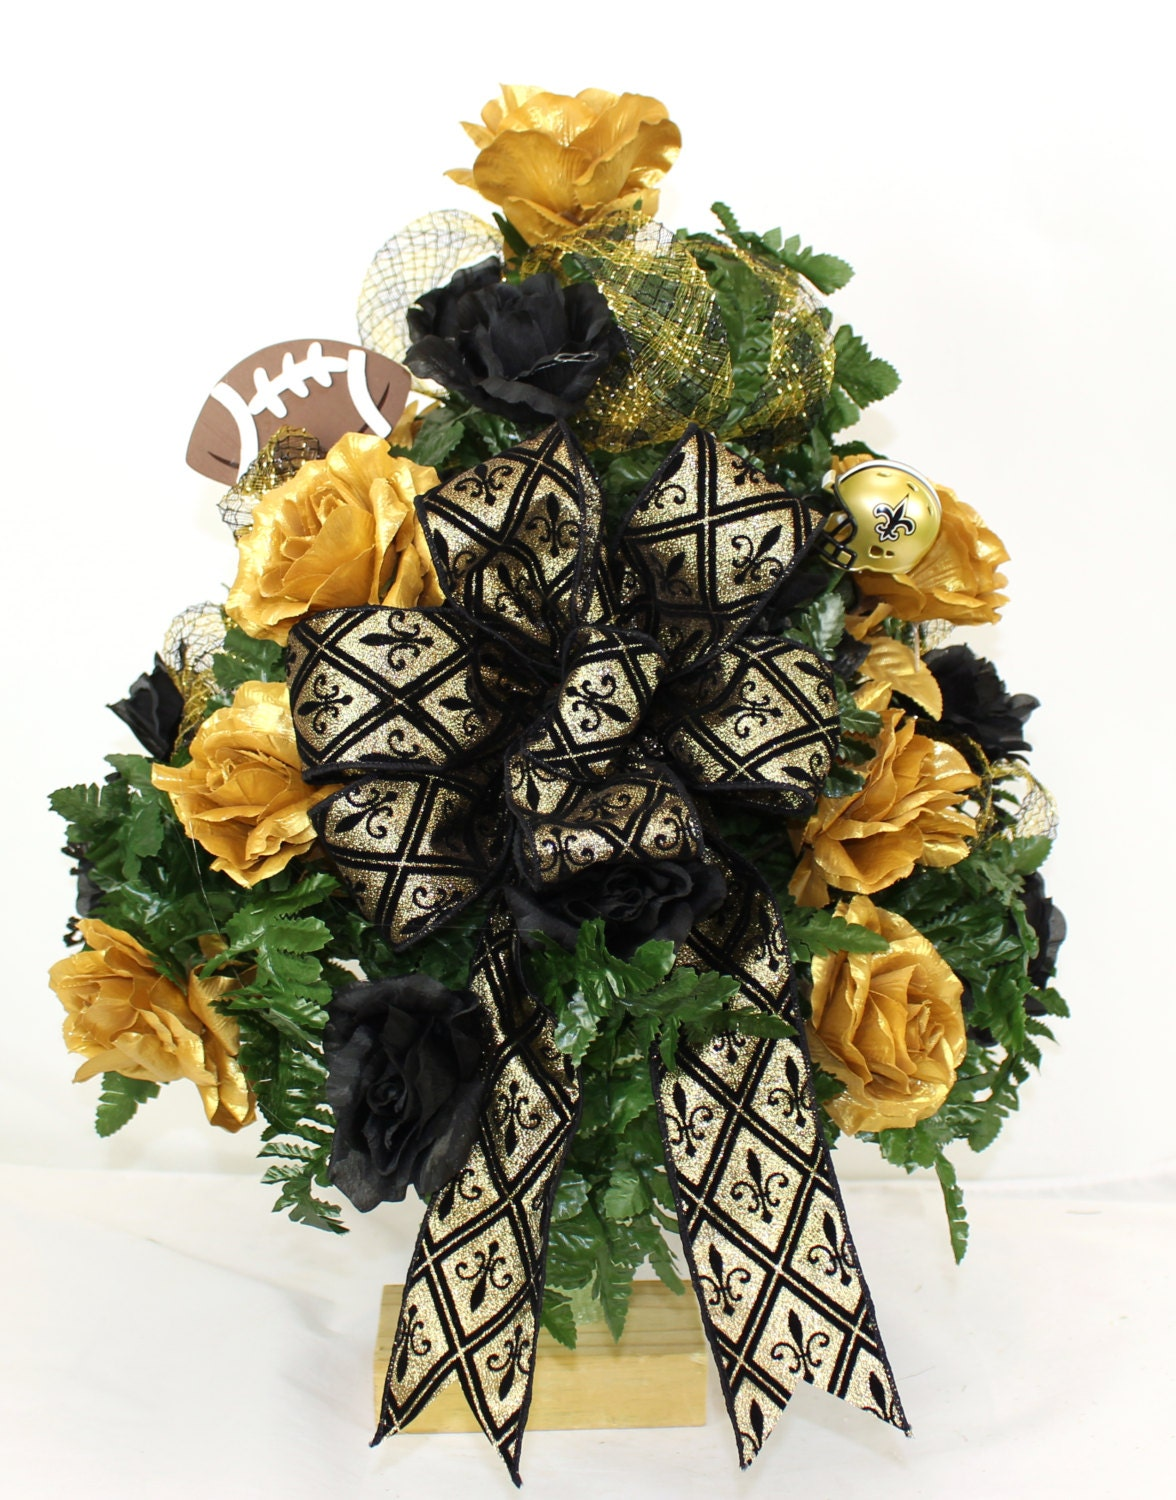 New orleans saints fan vase cemetery flower by crazyboutdeco